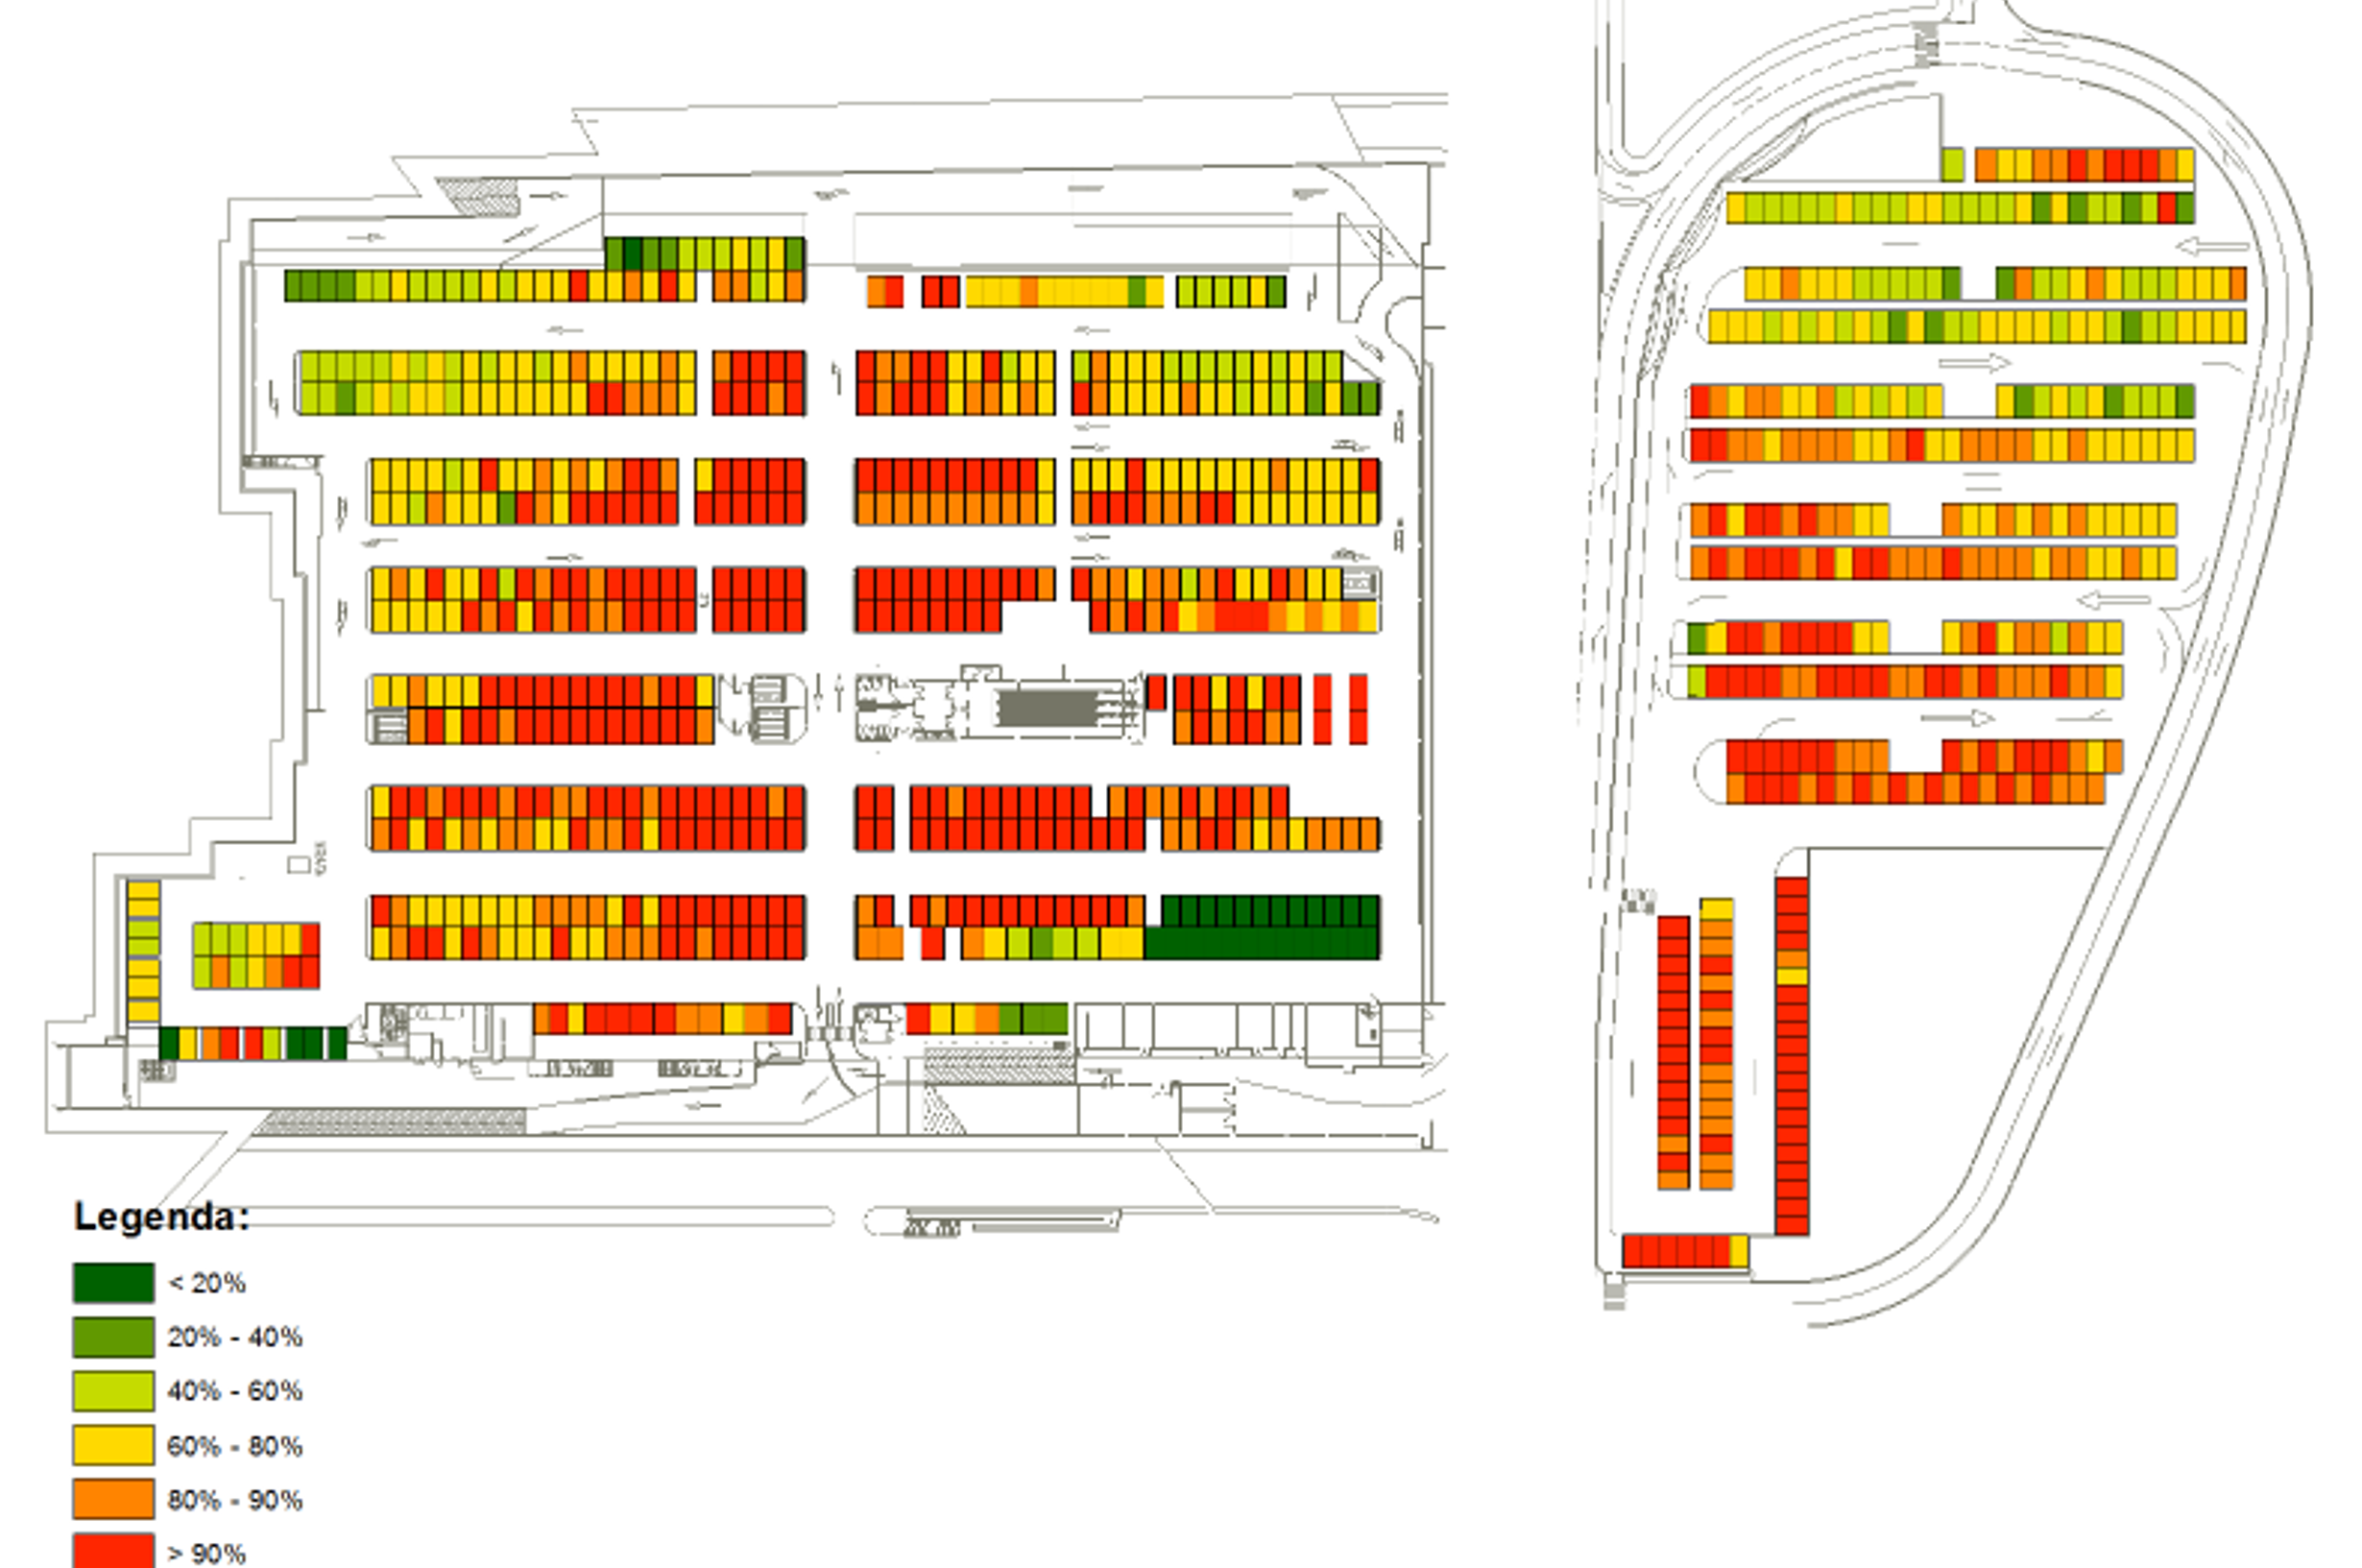 Systematica_Tuscia Shopping Centre_Parking Occupancy Index